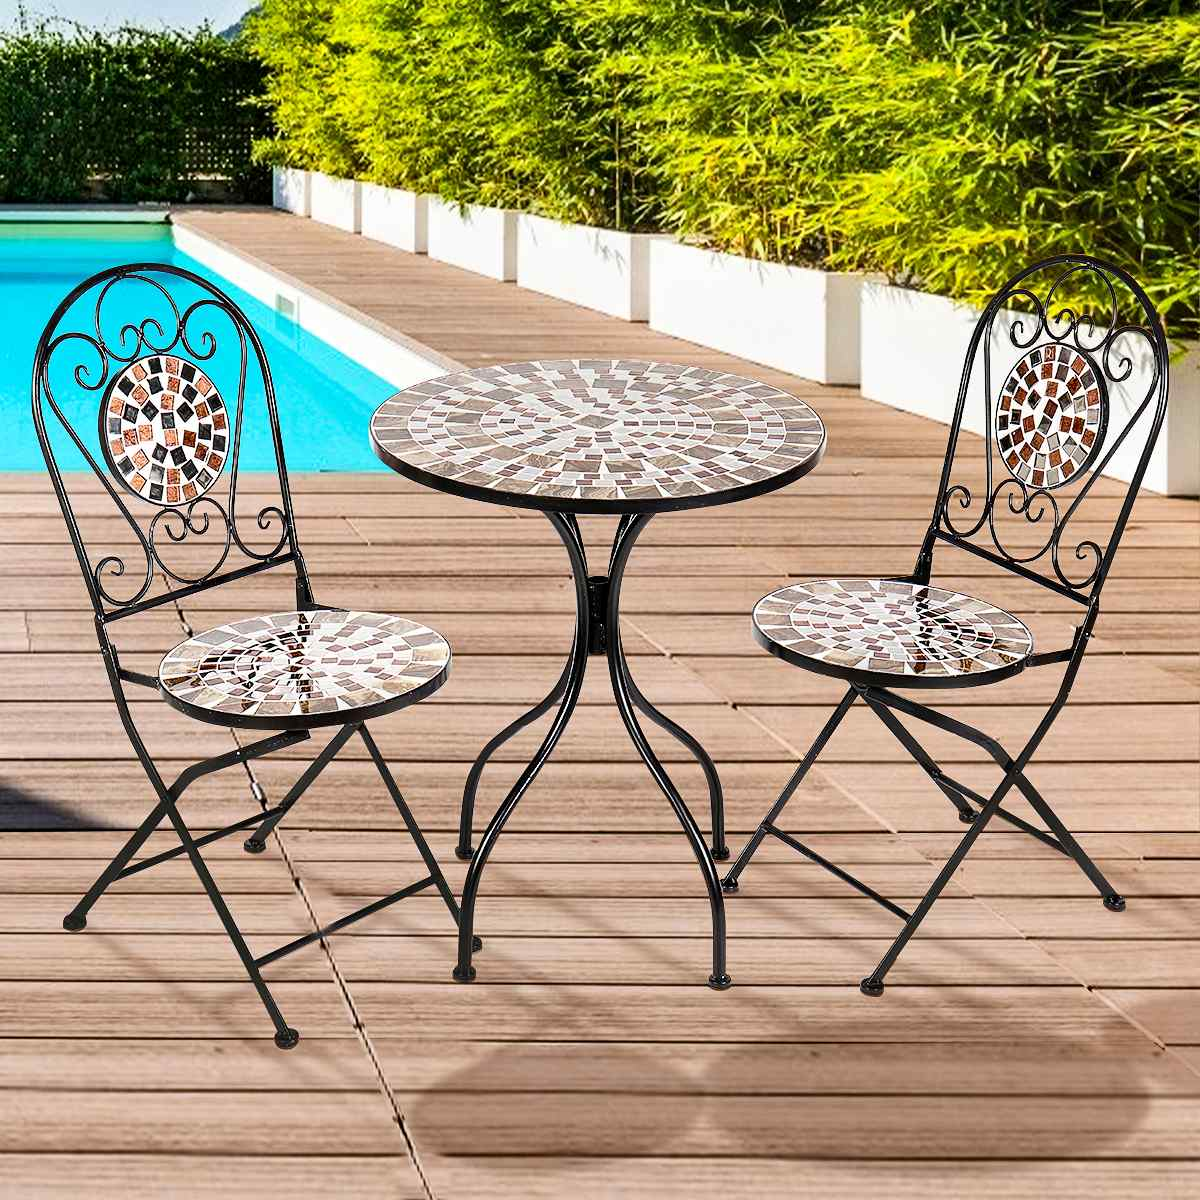 3Pcs/Set Iron Floral Pattern Design Bistro Patio Set Round Table and 2XFoldable Chairs Set Furniture Garden Outdoor Seat